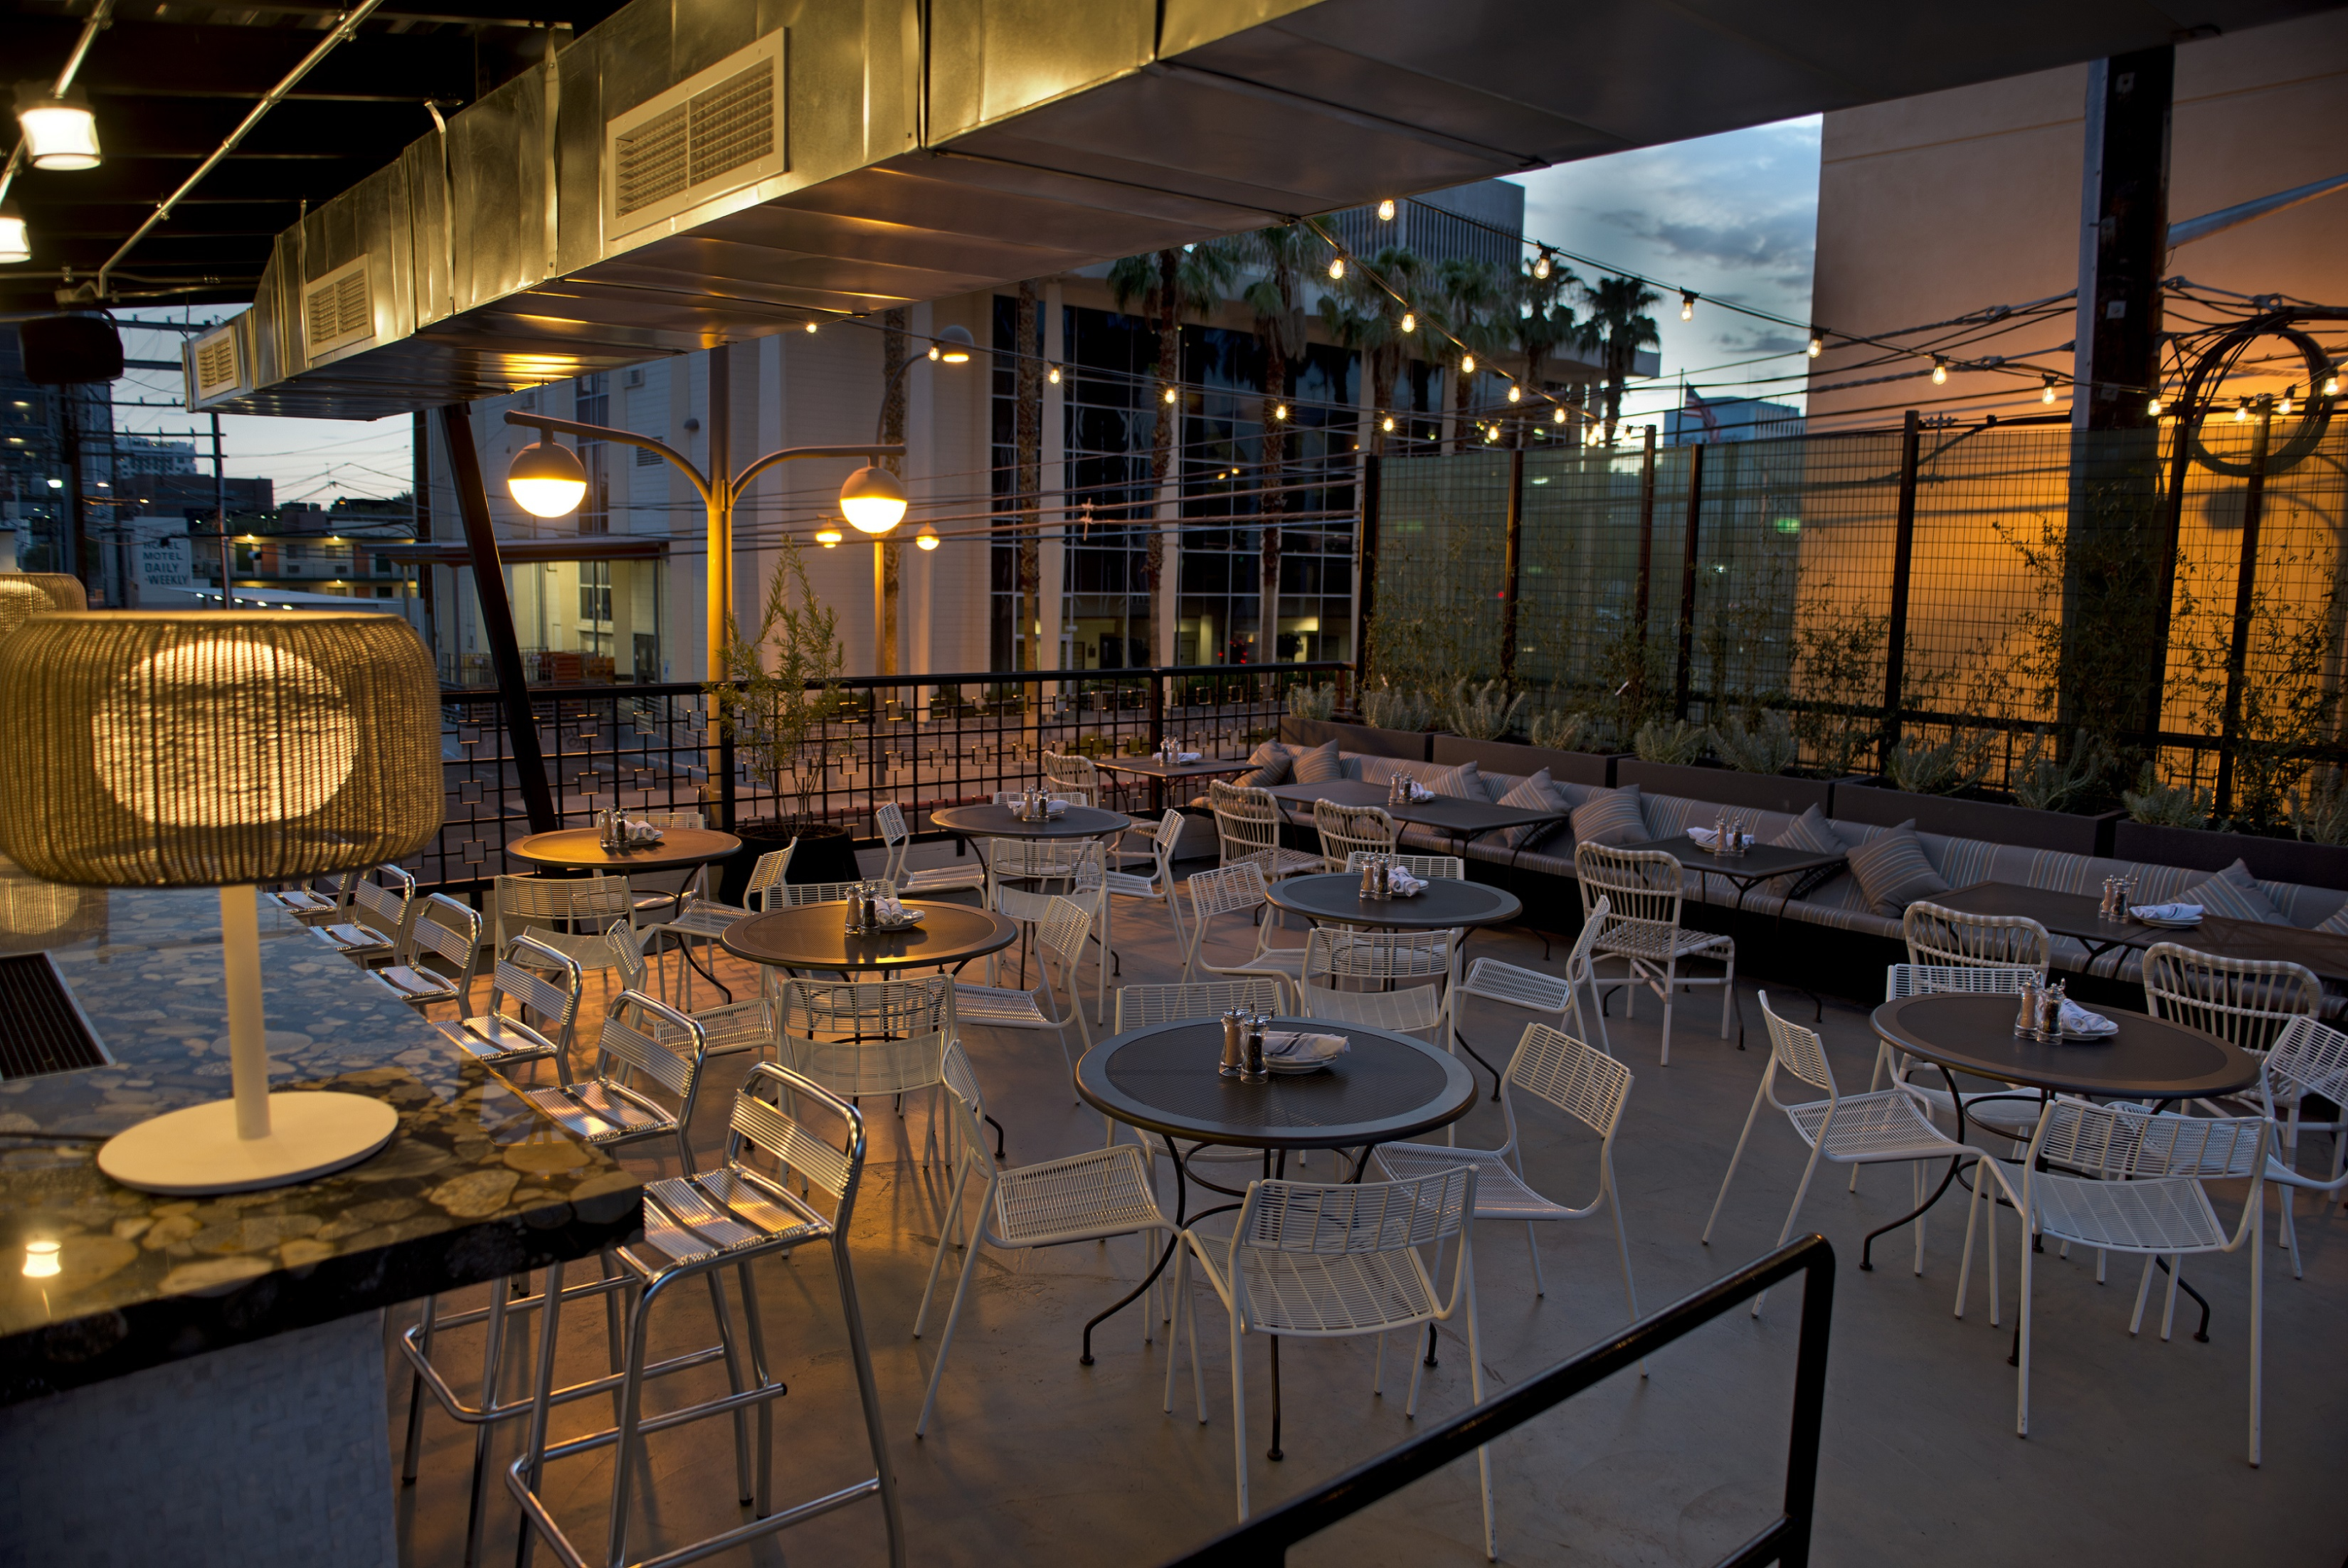 Cool The Hottest New Outdoor Dining Spots In Las Vegas inside Kitchen Table Las Vegas